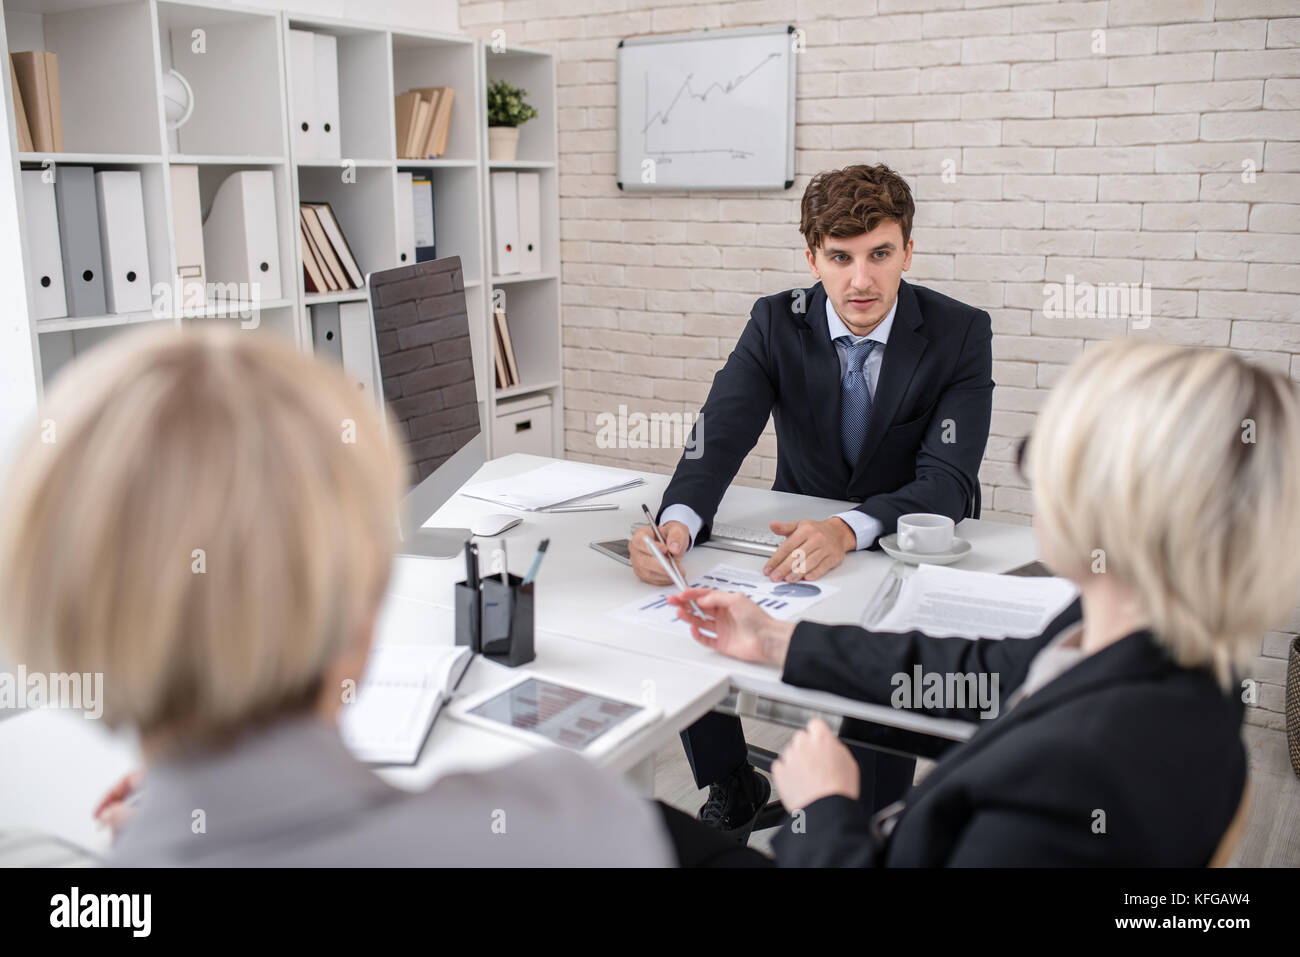 Handsome Man Leading Important Business Meeting in Office - Stock Image